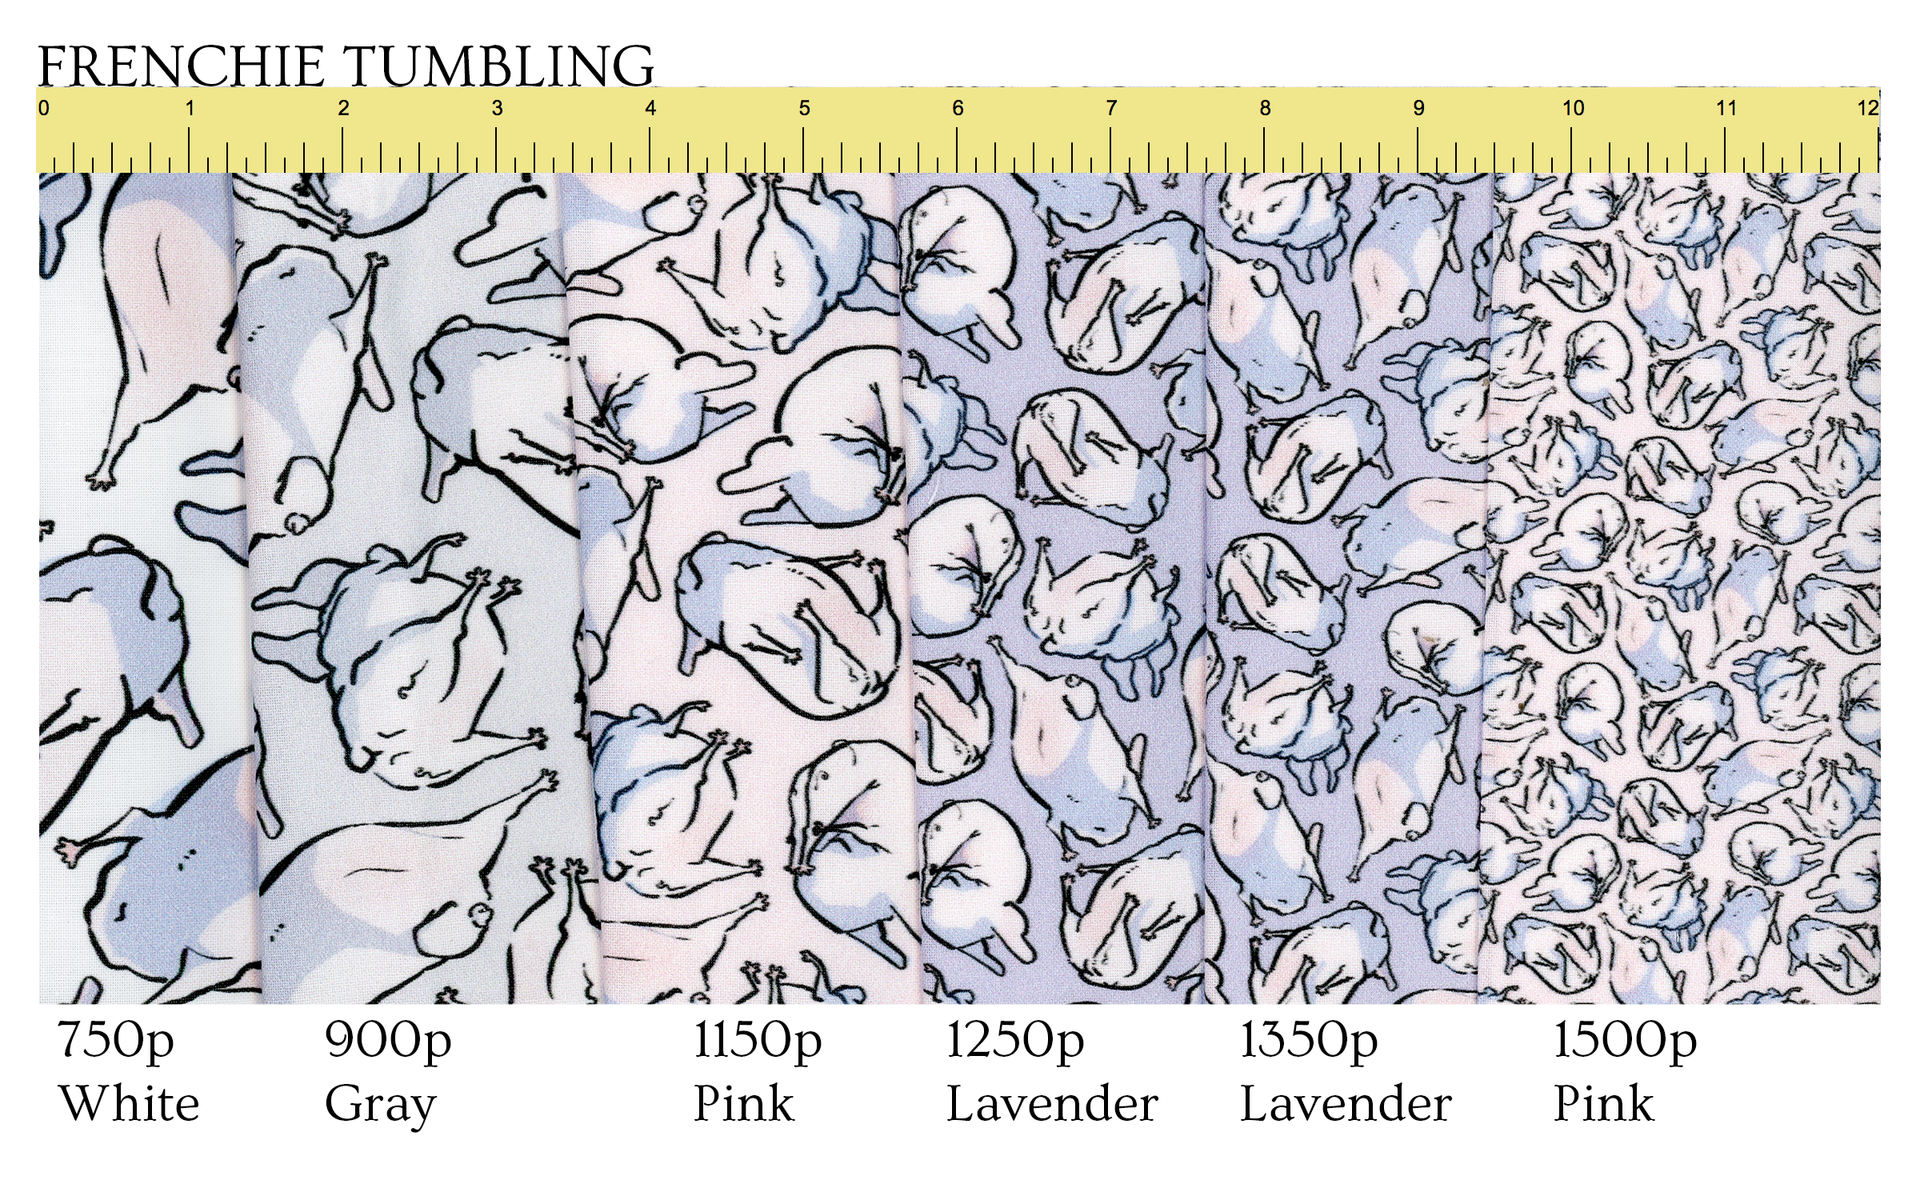 Follow this link to get Frenchie Tumbling patterns on Spoonflower!